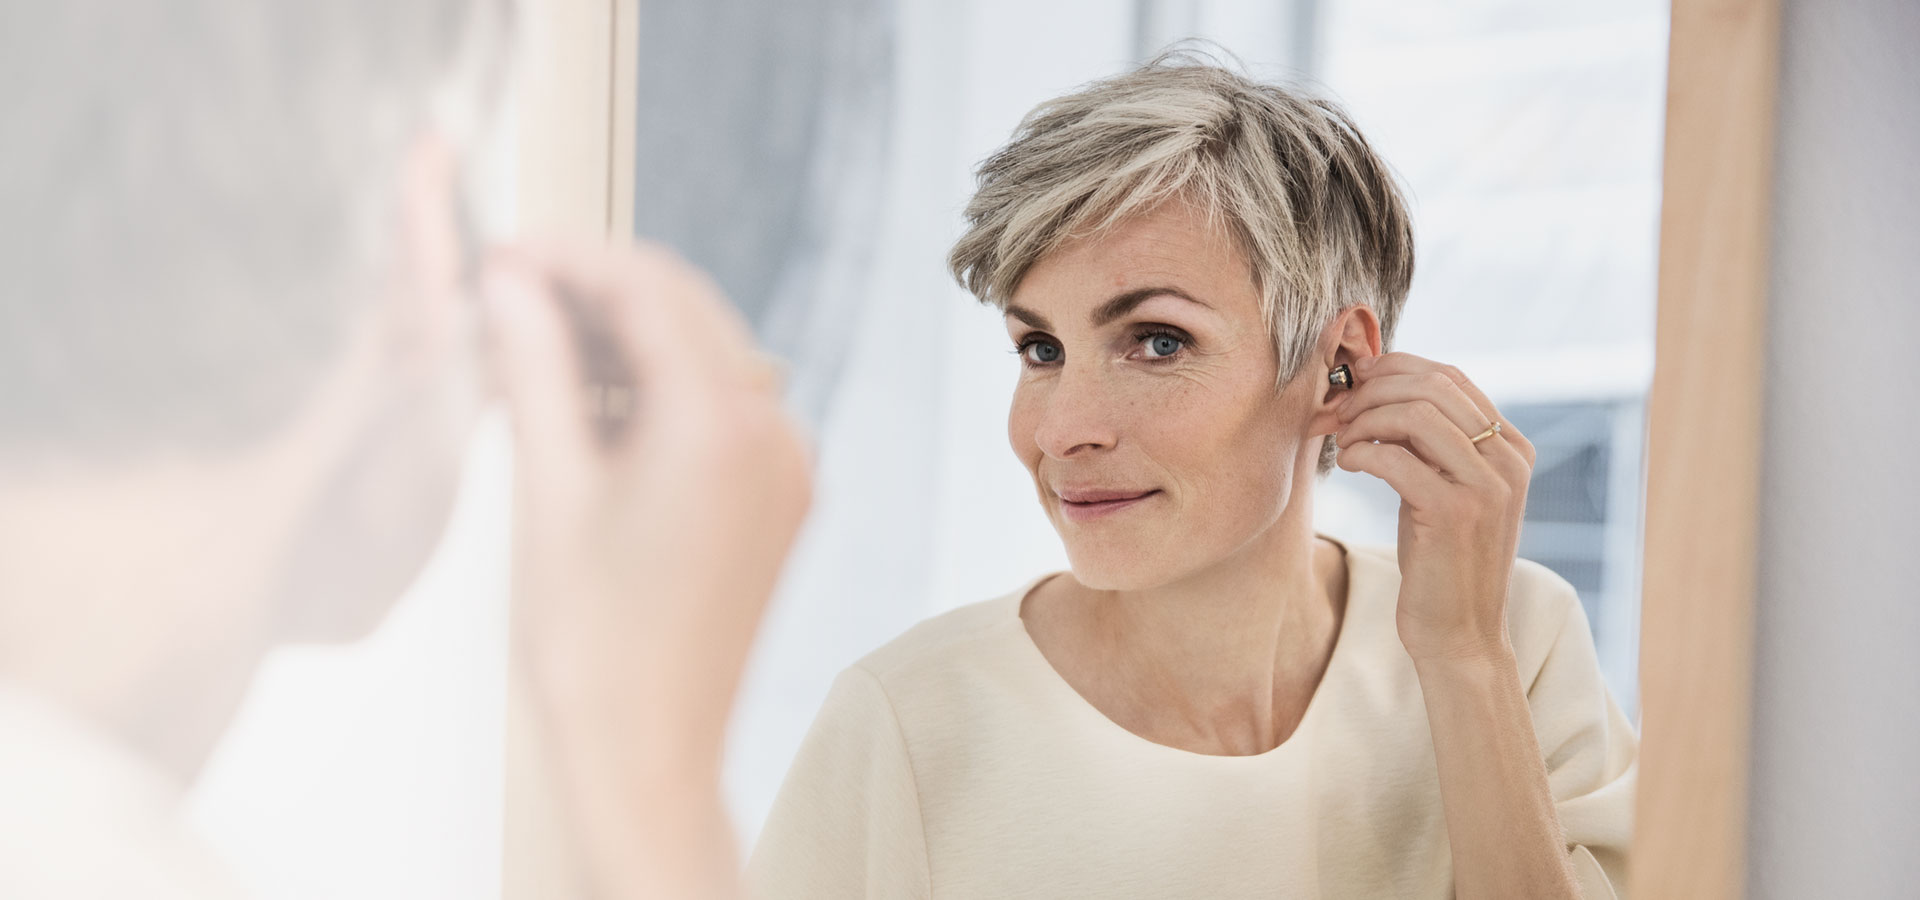 oticon hearing aids rediscover the sounds of your life